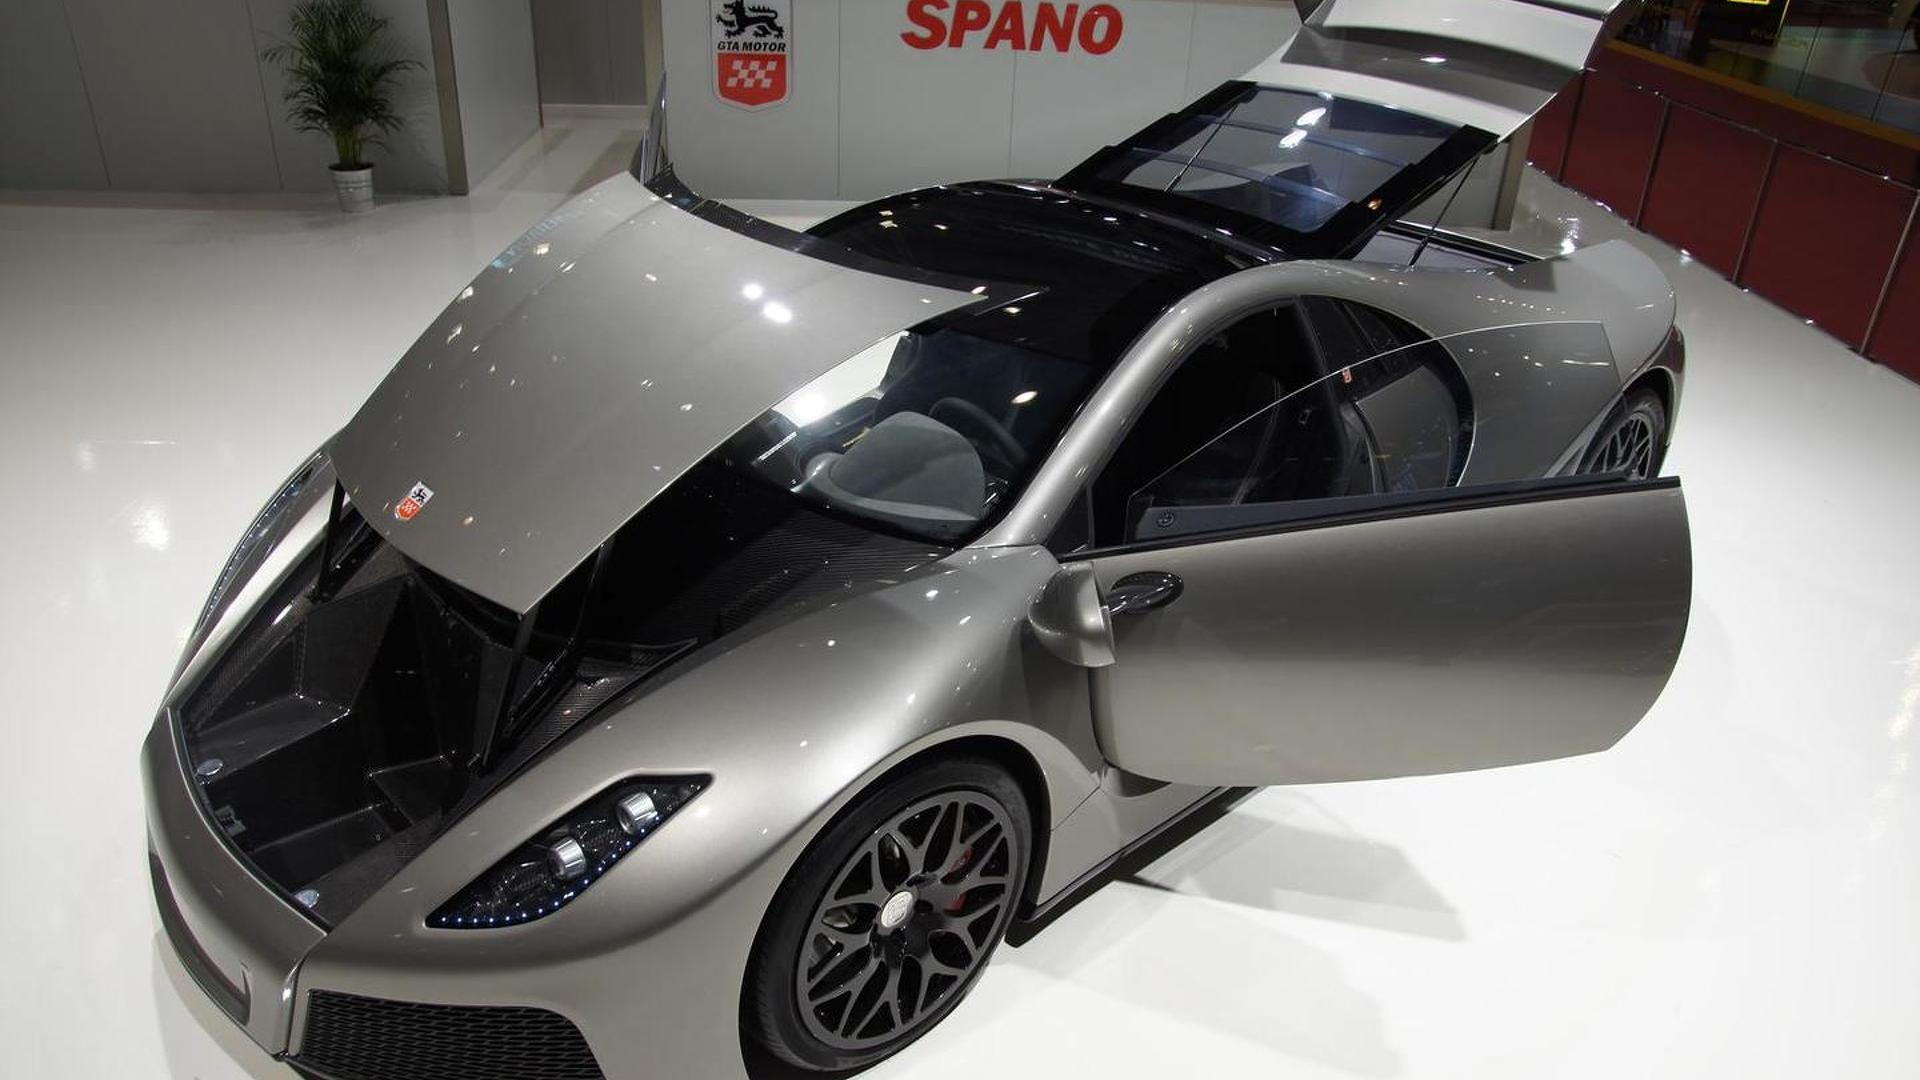 GTA Spano unveiled in production guise - 0-100kph in 2.9 seconds